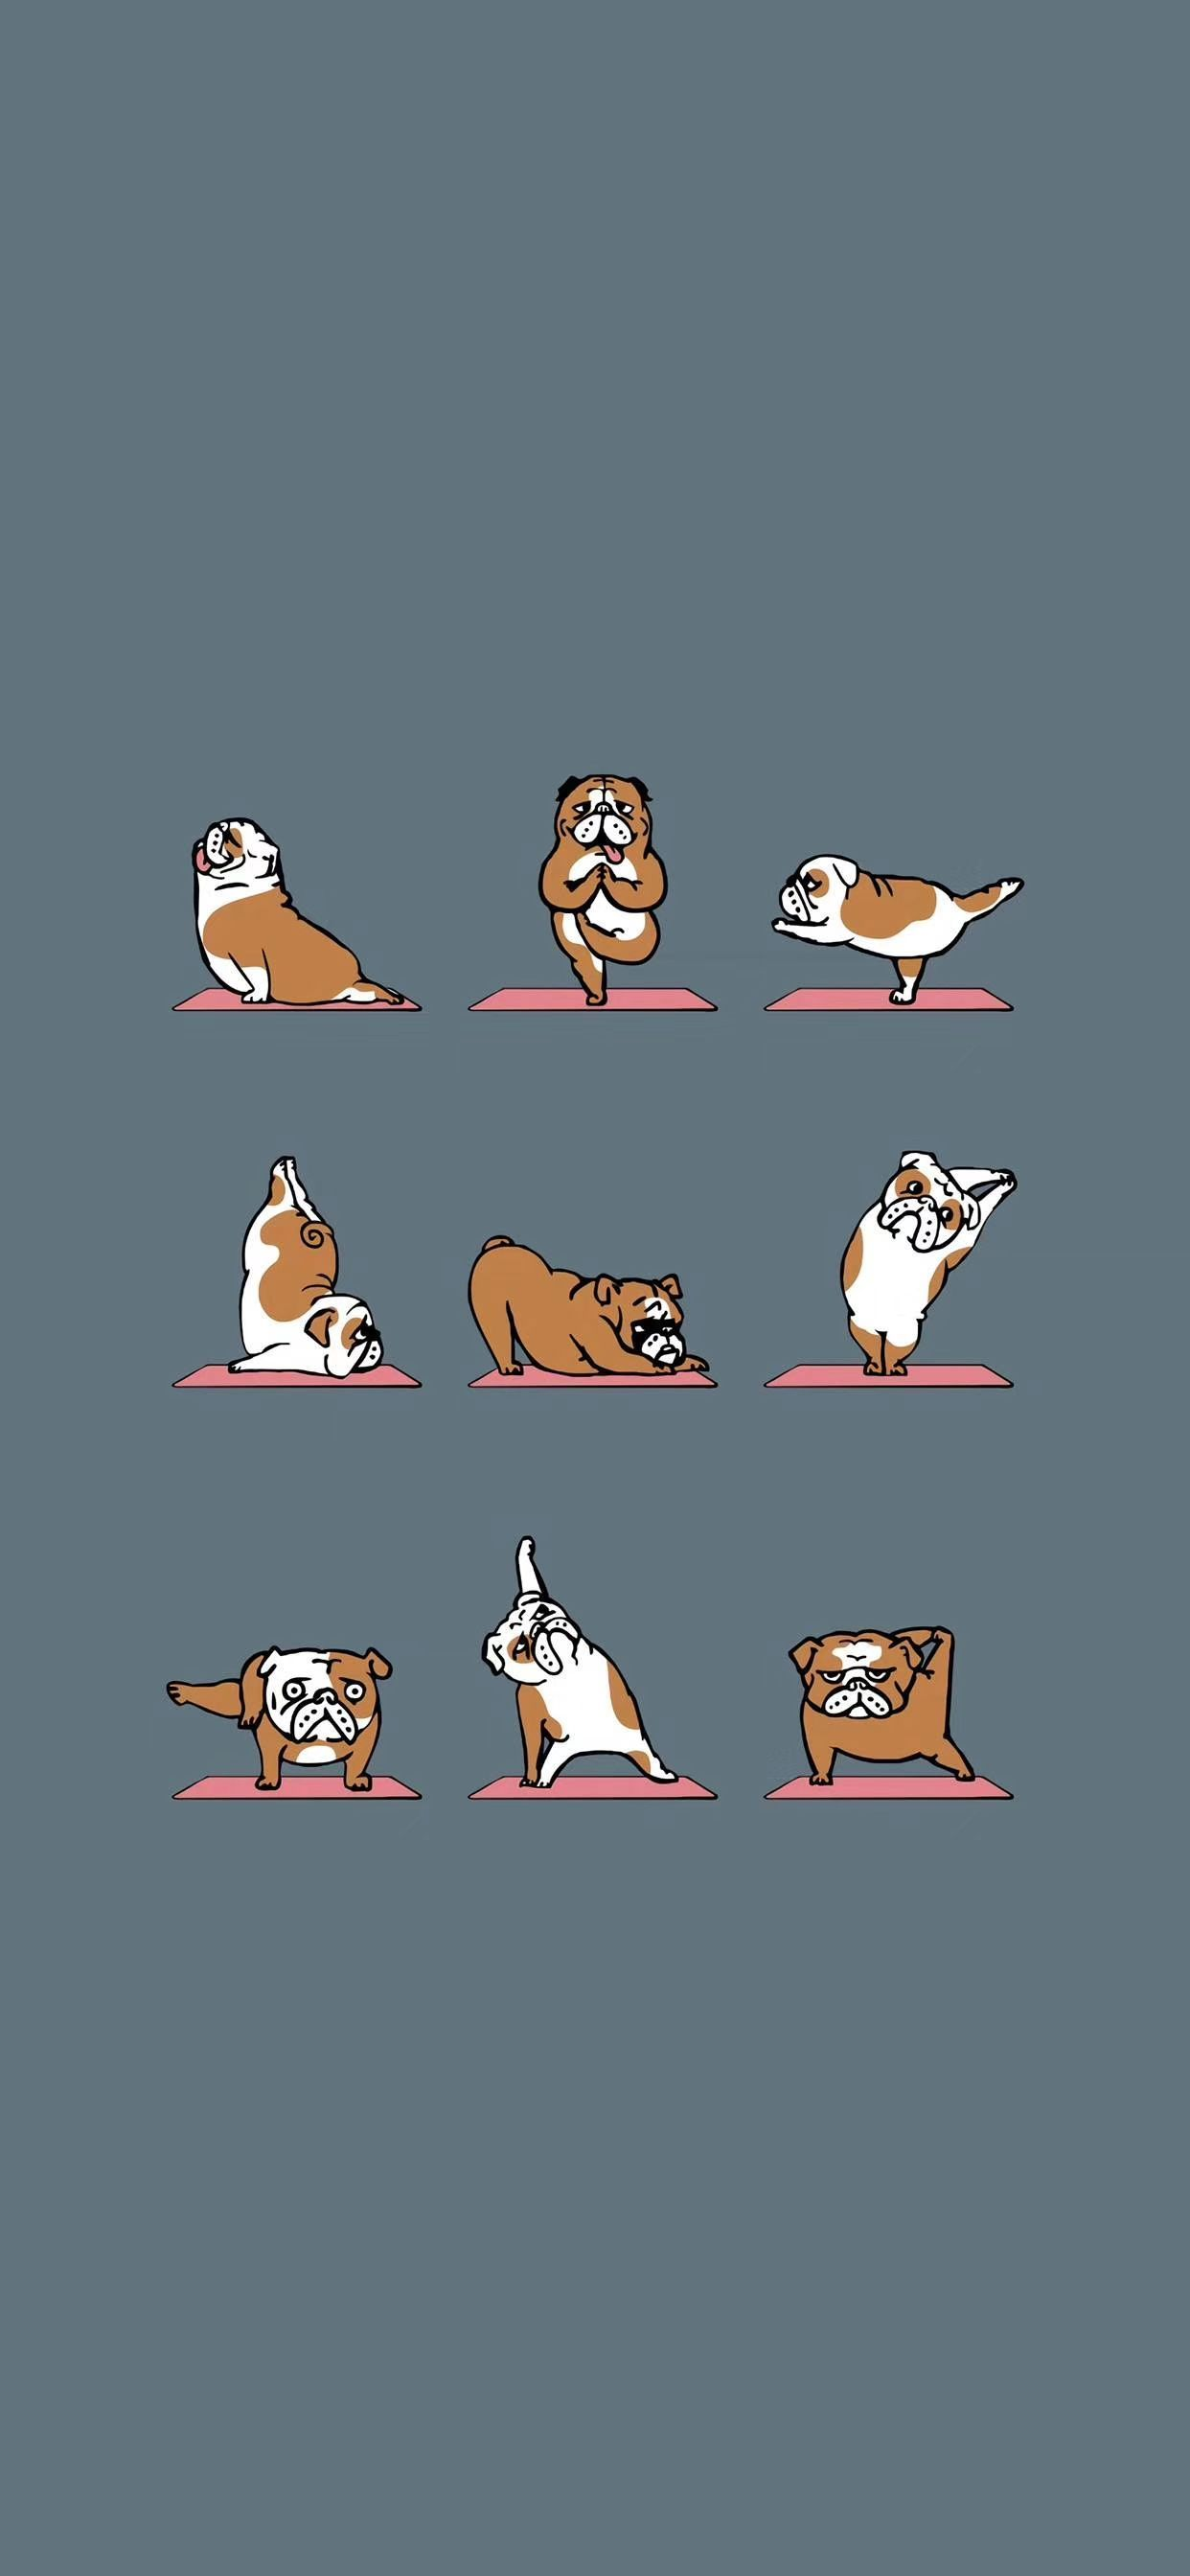 Pago Wallpaper Funny Wallpapers Cute Backgrounds Iphone Wallpaper Yoga Funny pug doing yoga iphone wallpaper